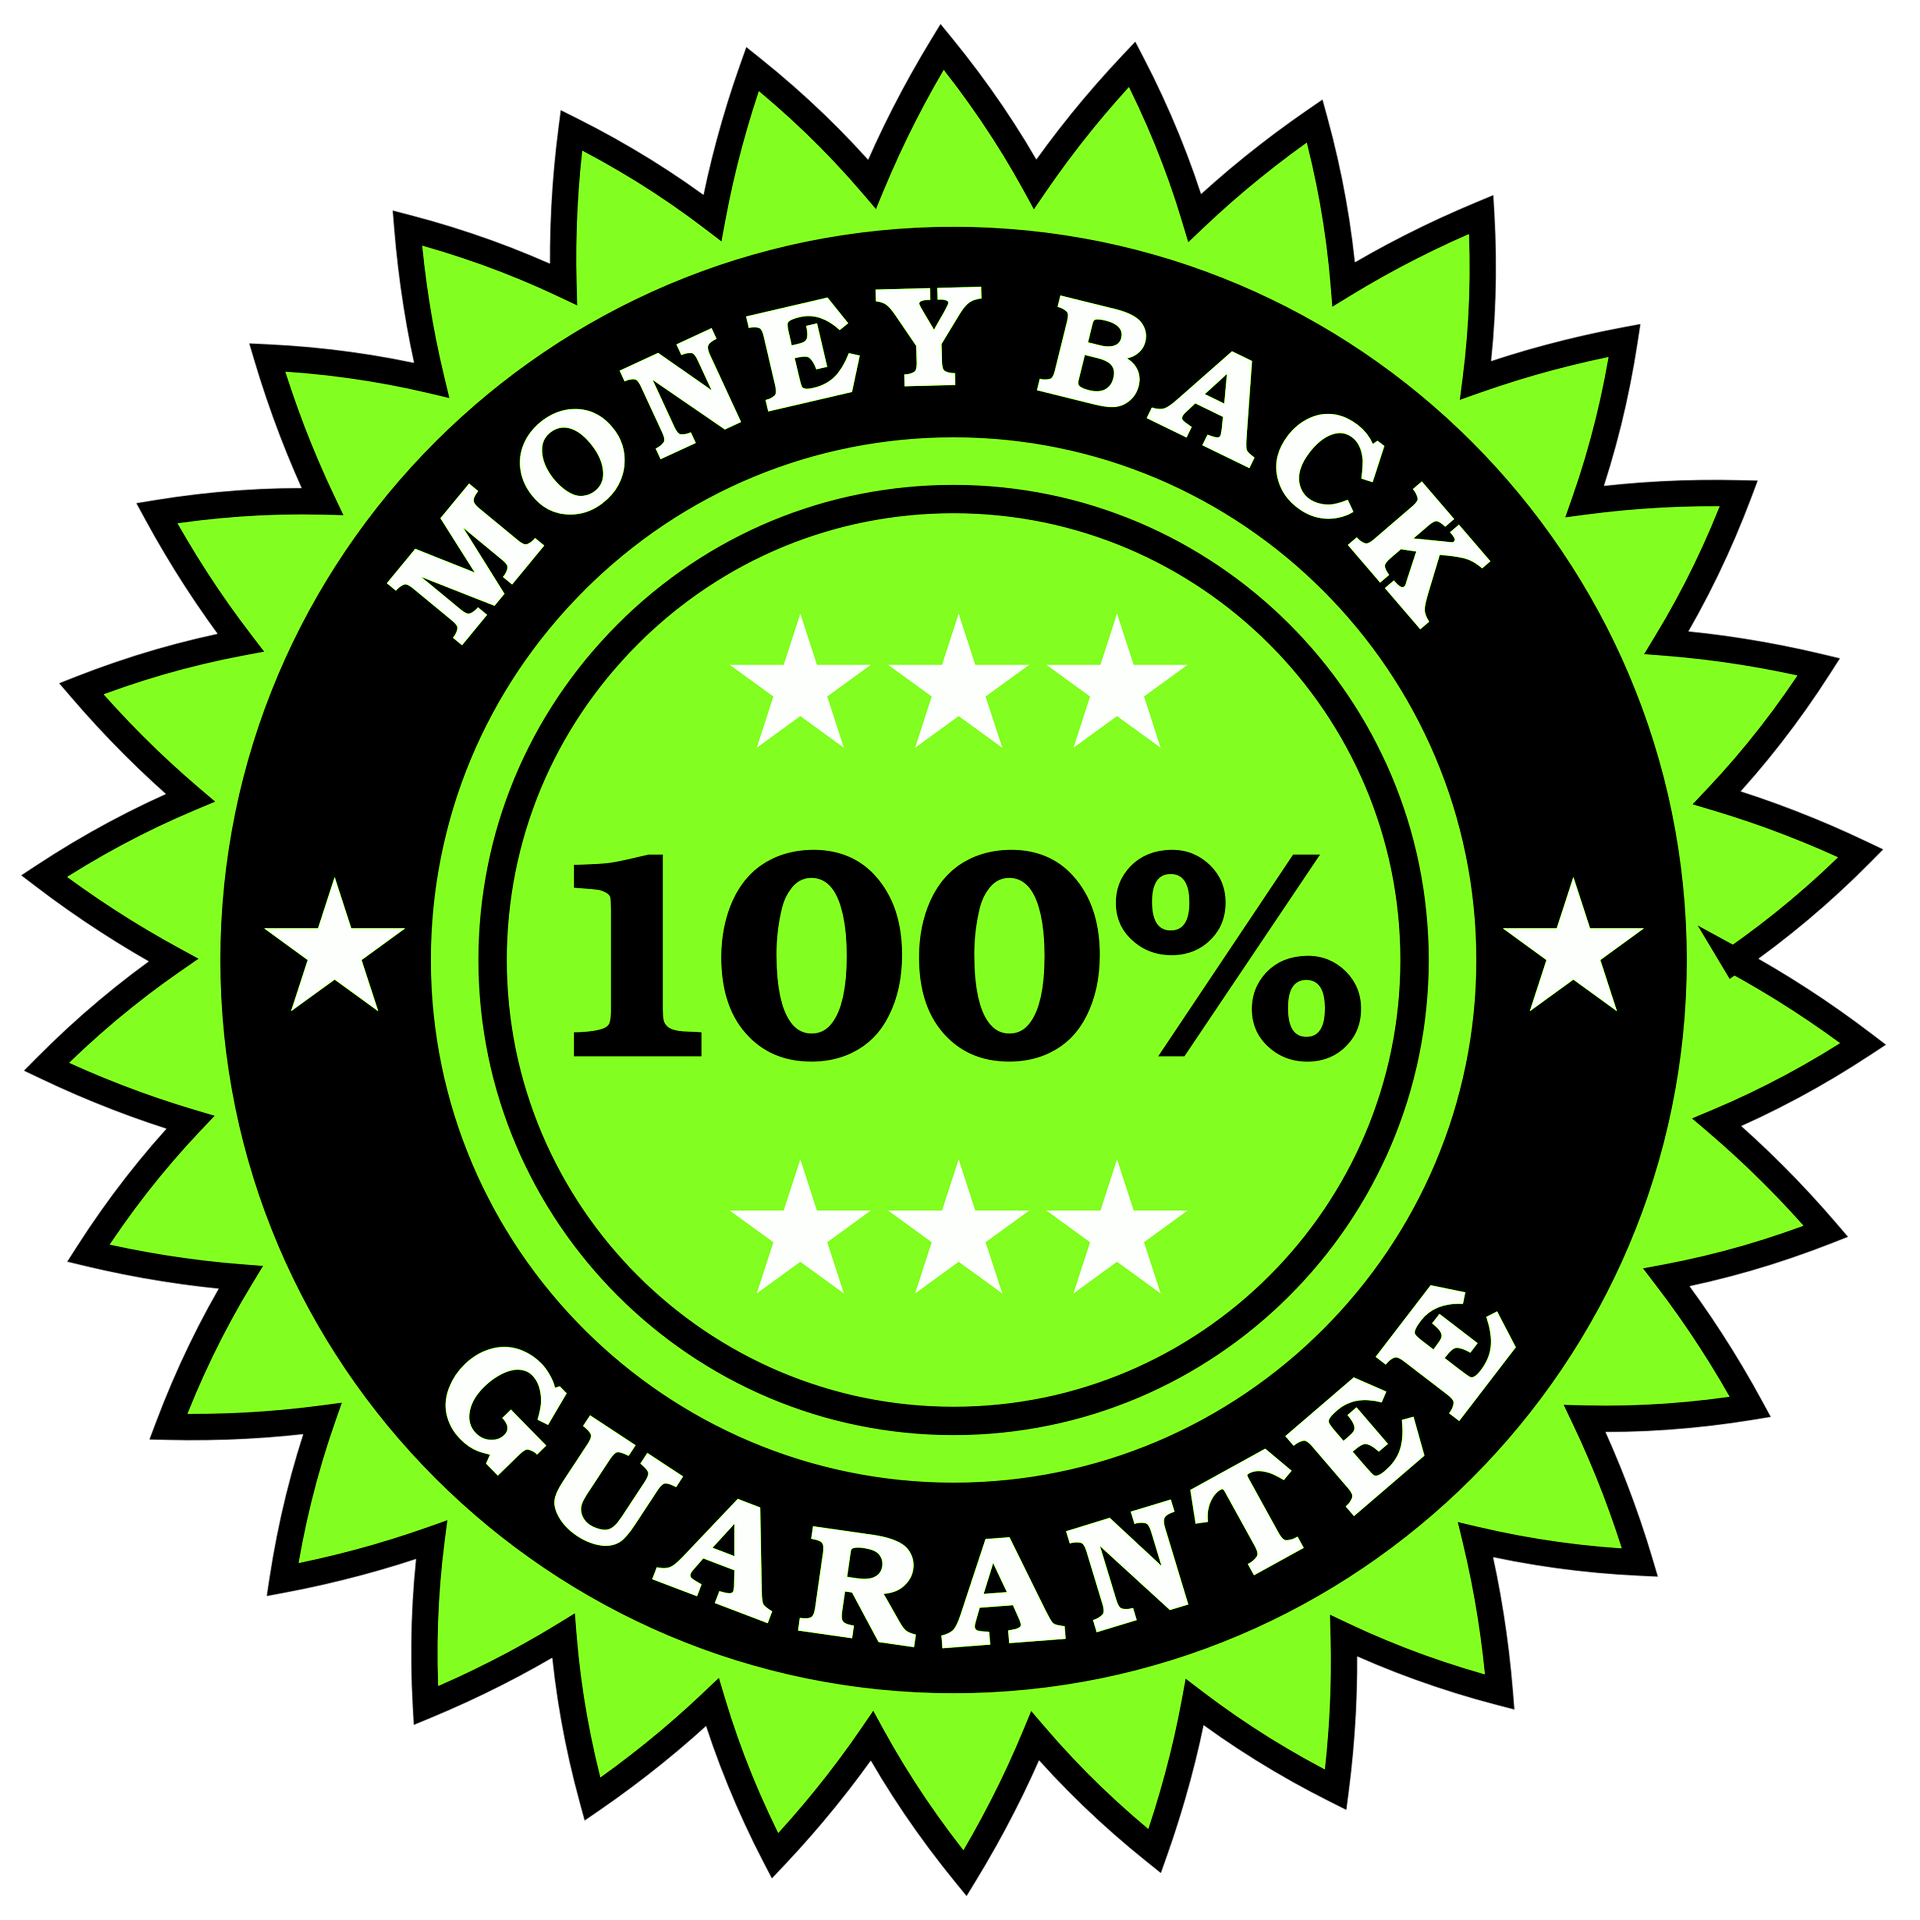 The Seeding Change 100% Money Back Guarantee